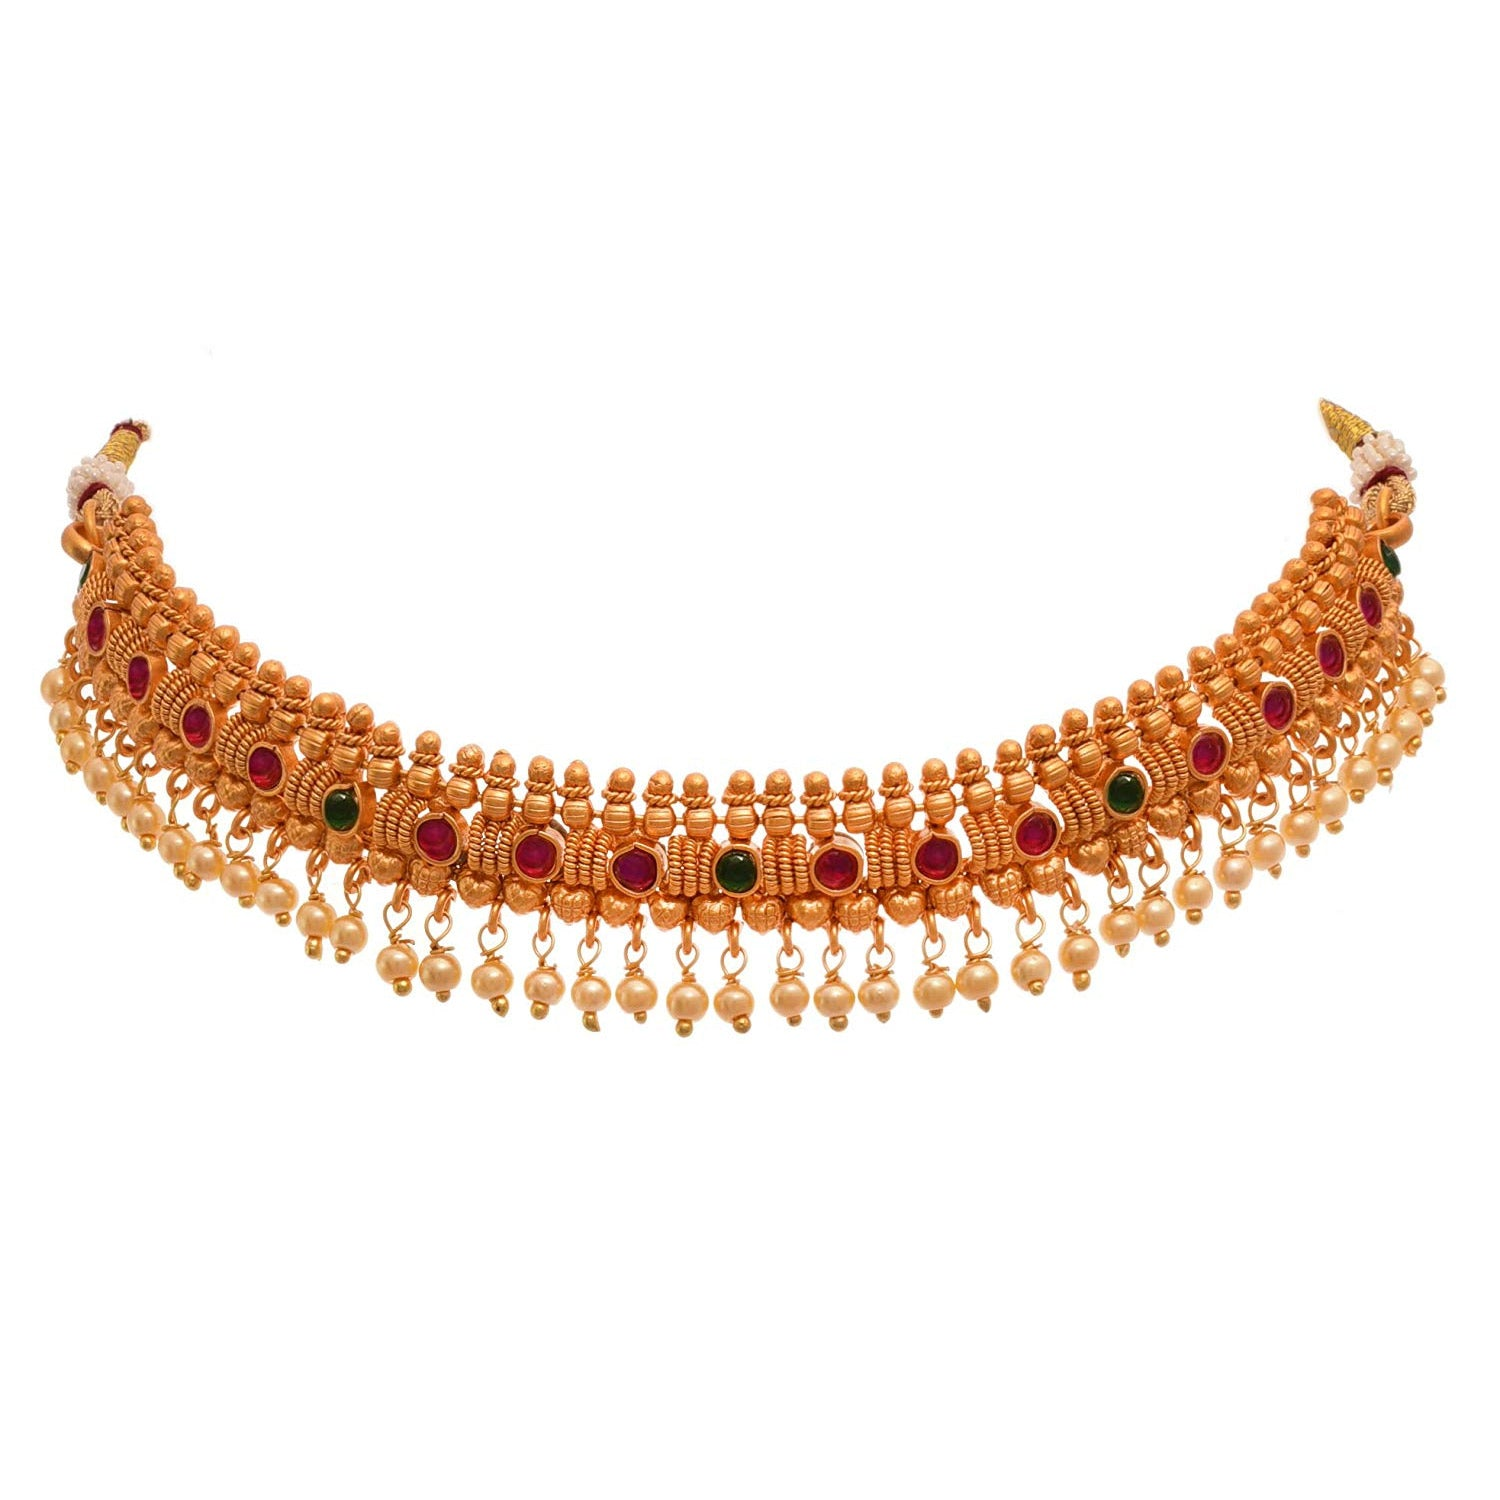 JFL- Jewellery For Less Traditional Ethnic One Gram Matt Gold Plated Bajuband / Armlet With Stone & Pearls For Women & Girls.